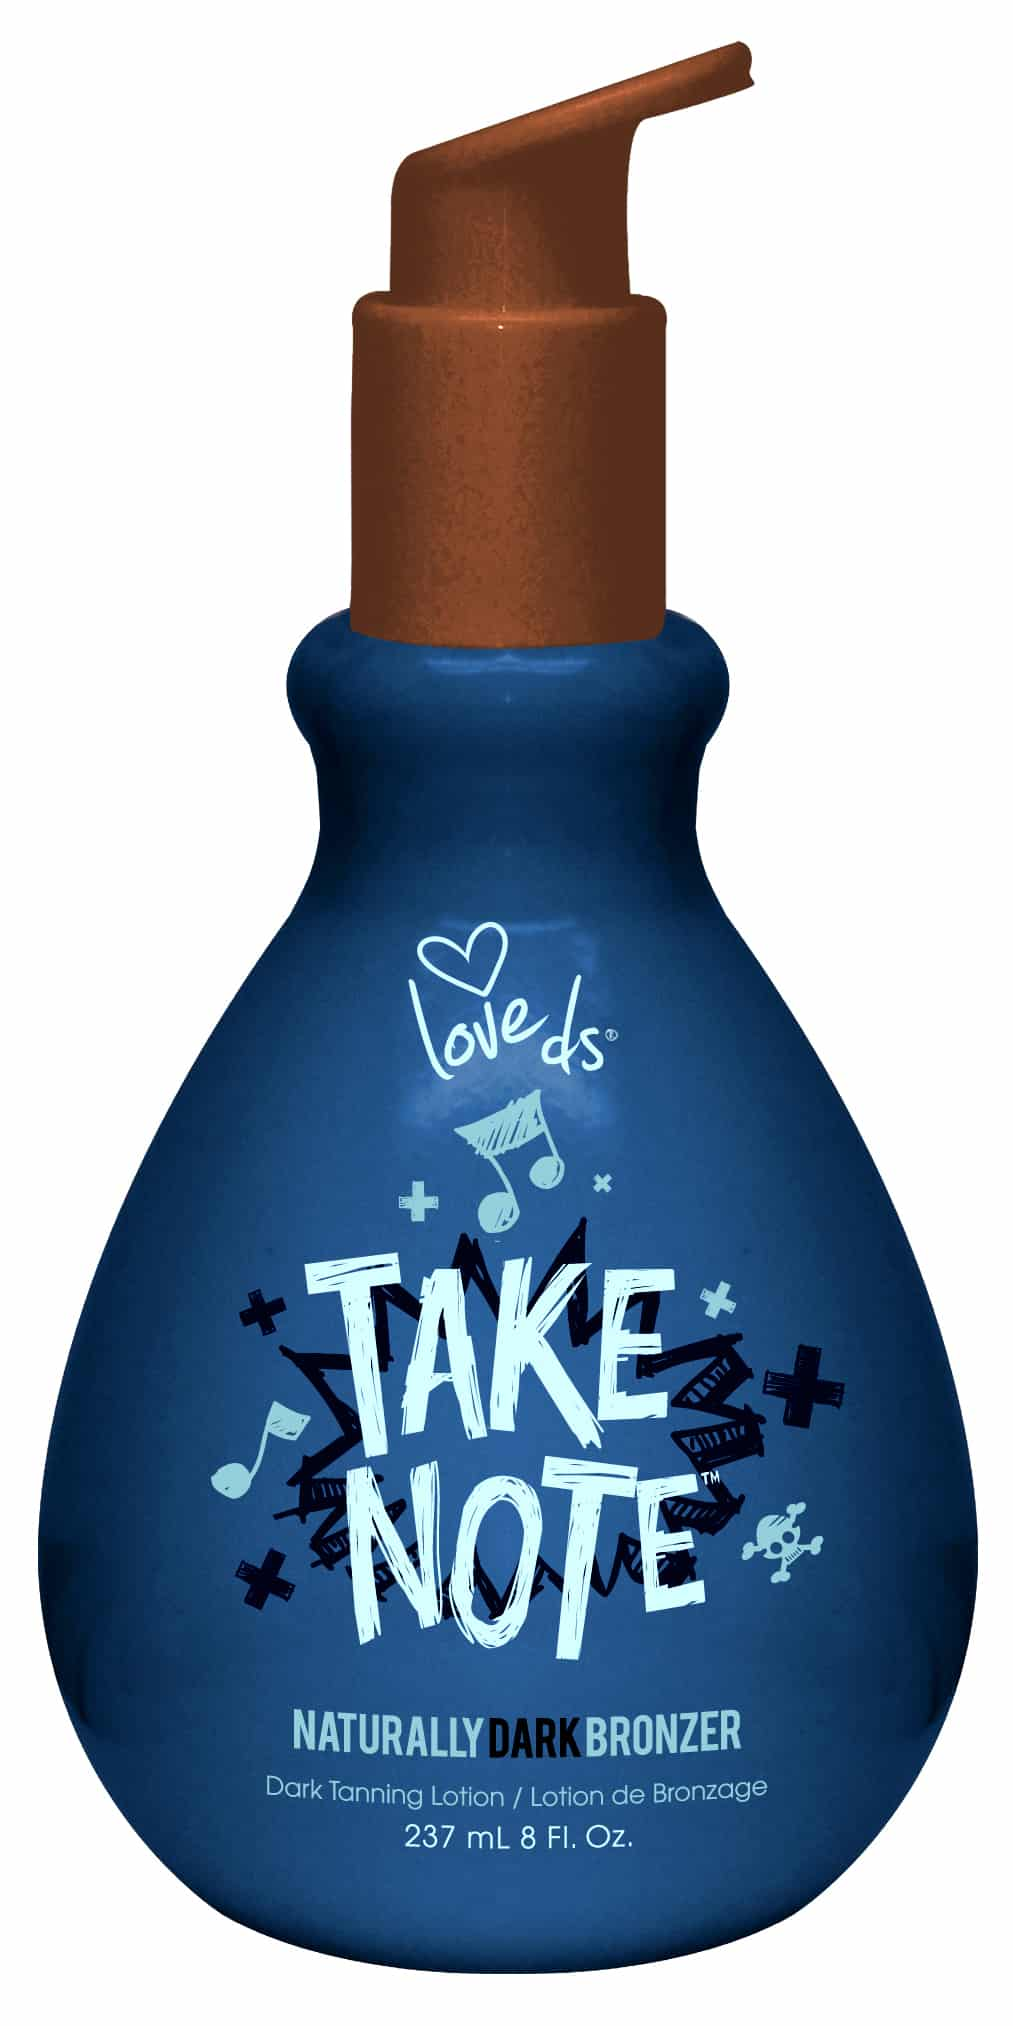 Take note bottle tanning supplies unlimited for A touch of gold tanning salon